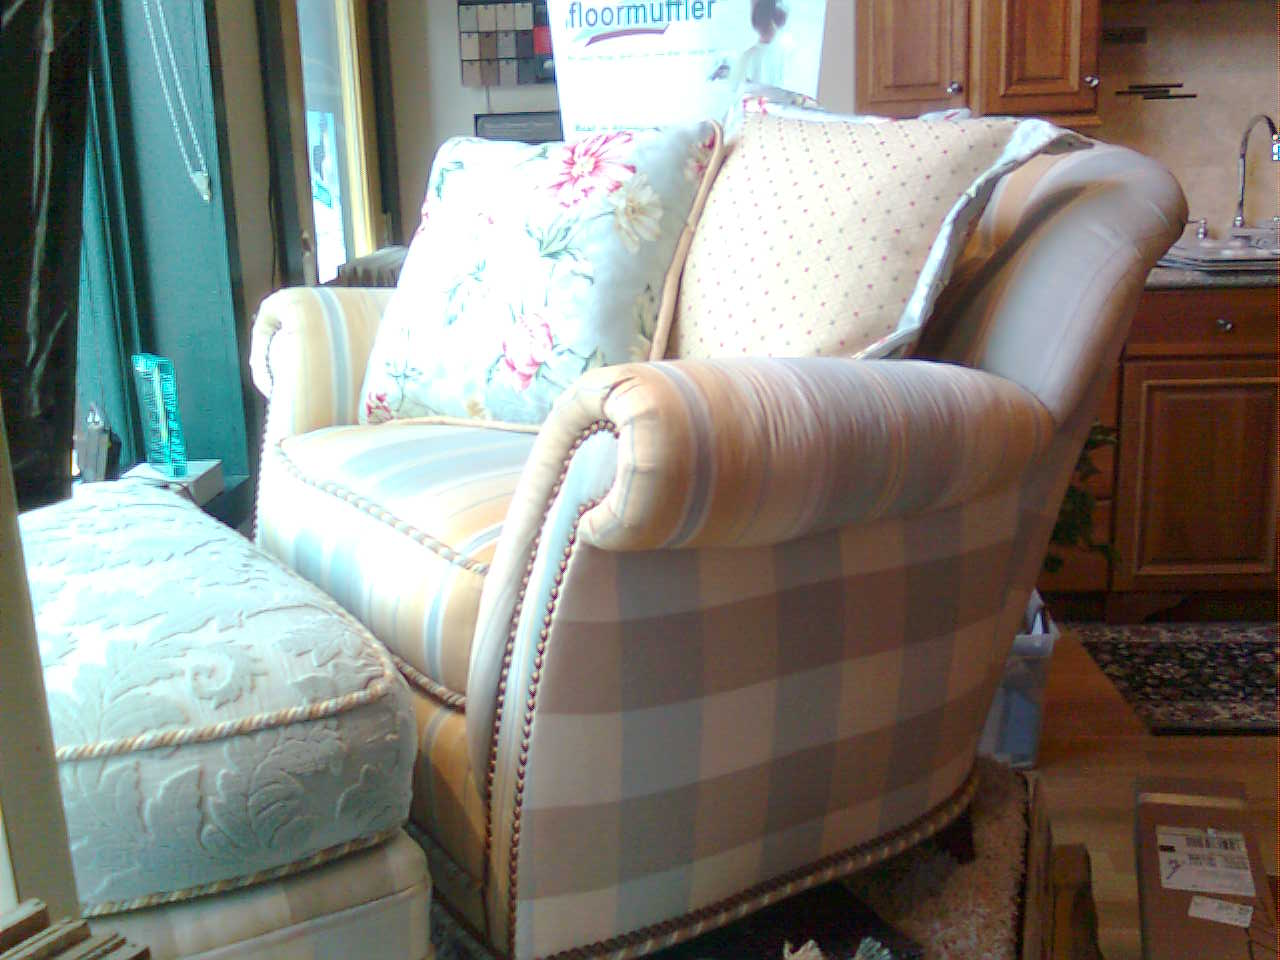 Cost Of Reupholstering A Chair How To Determine Whether You Should Reupholster Or Buy New